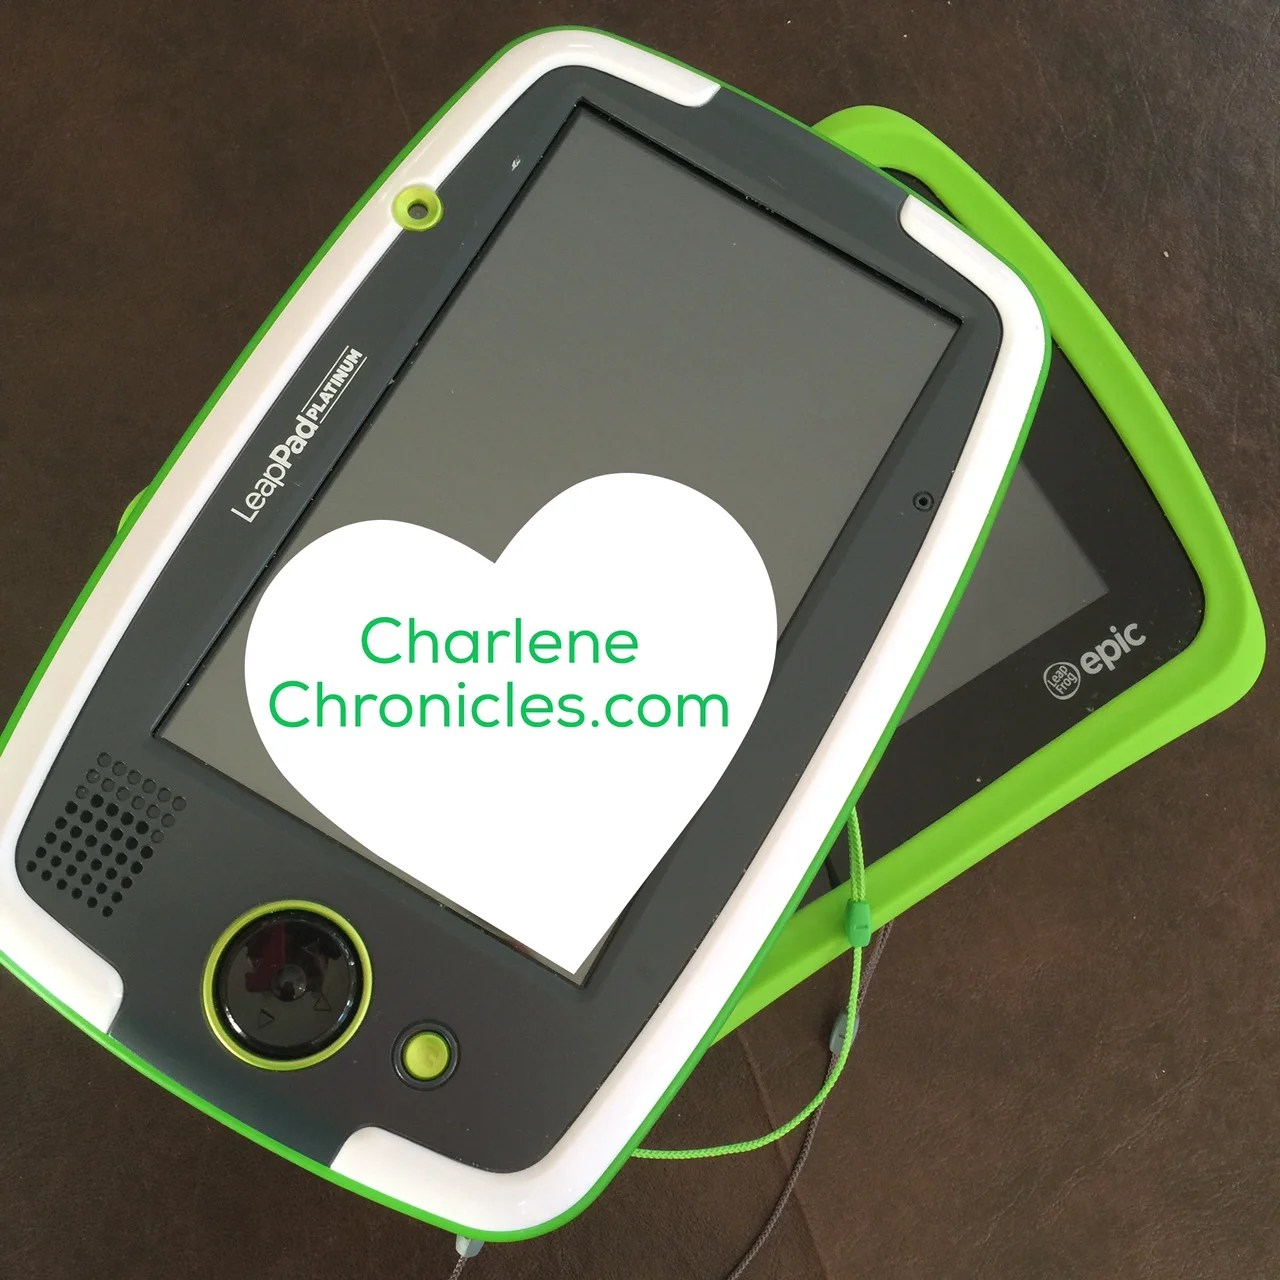 LeapFrog Epic vs Platinum - Charlene Chronicles